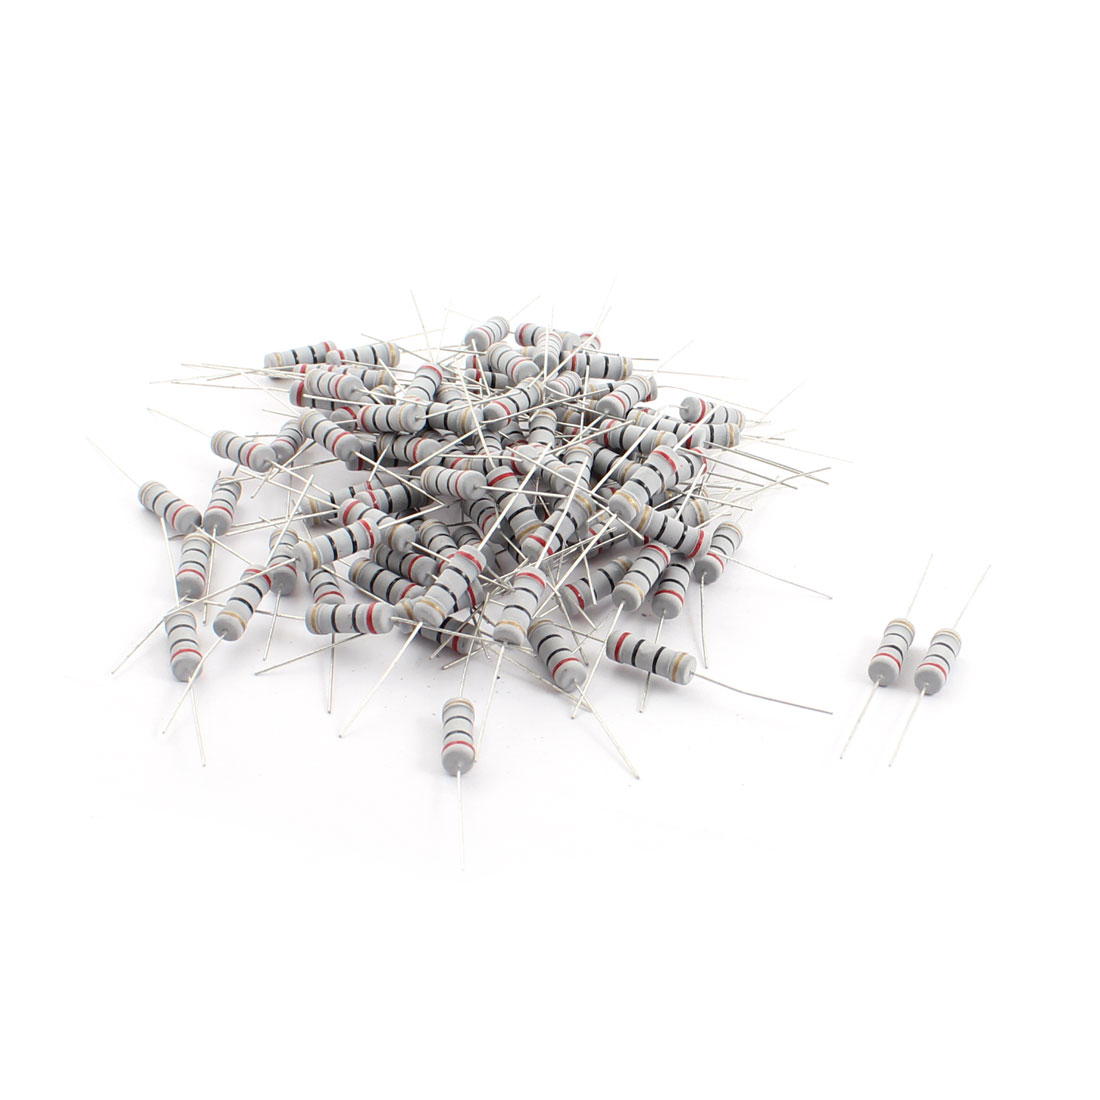 100pcs 20 Ohm 2W 5% Tolerance Axial Lead Metal Oxide Film Resistors